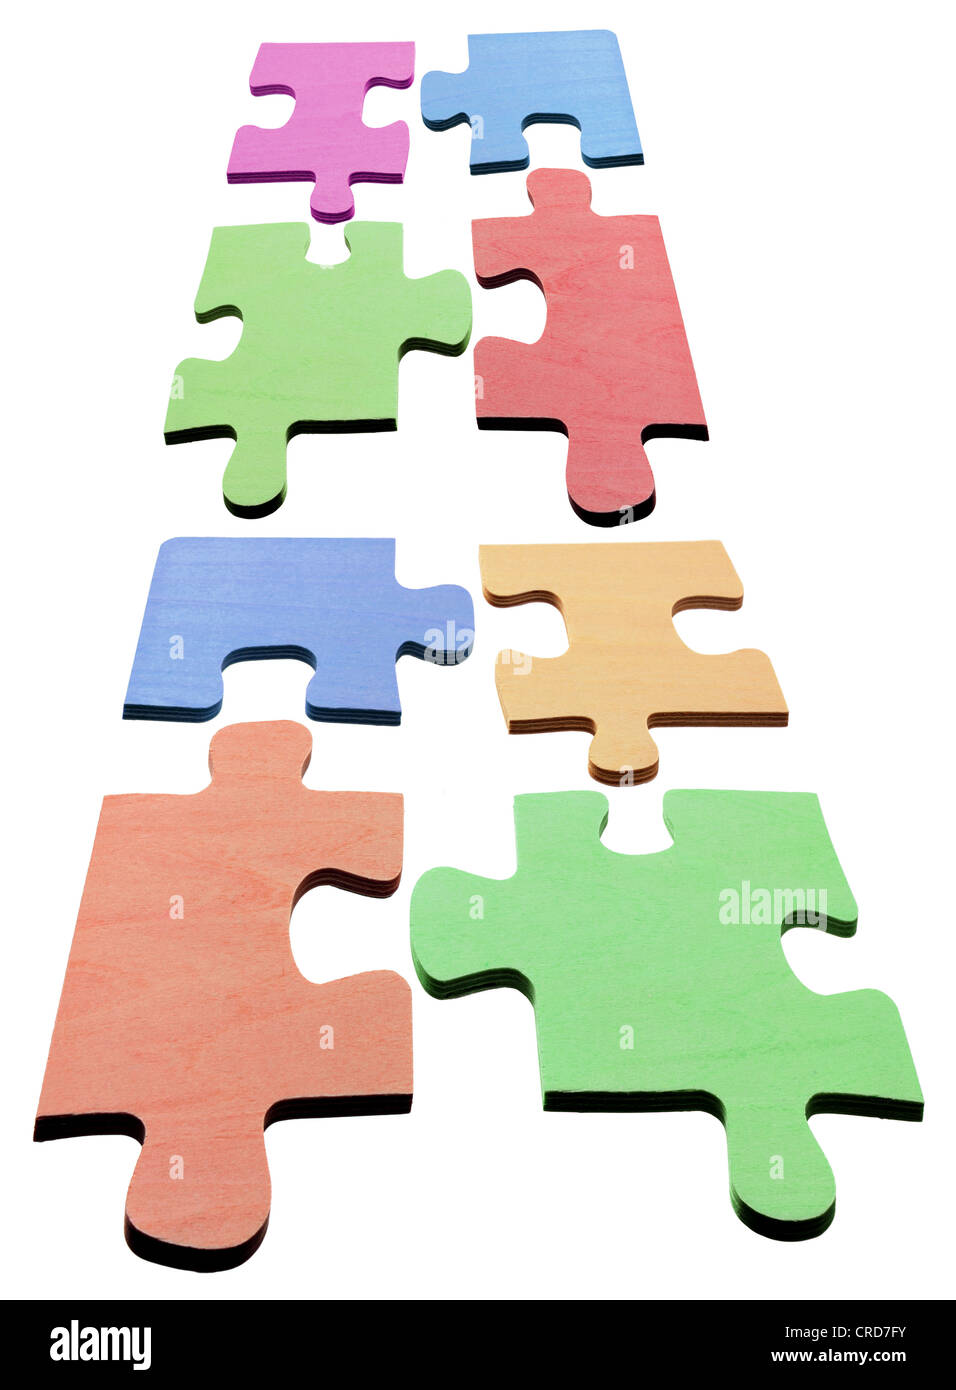 Jigsaw Puzzle Pieces Photo Stock